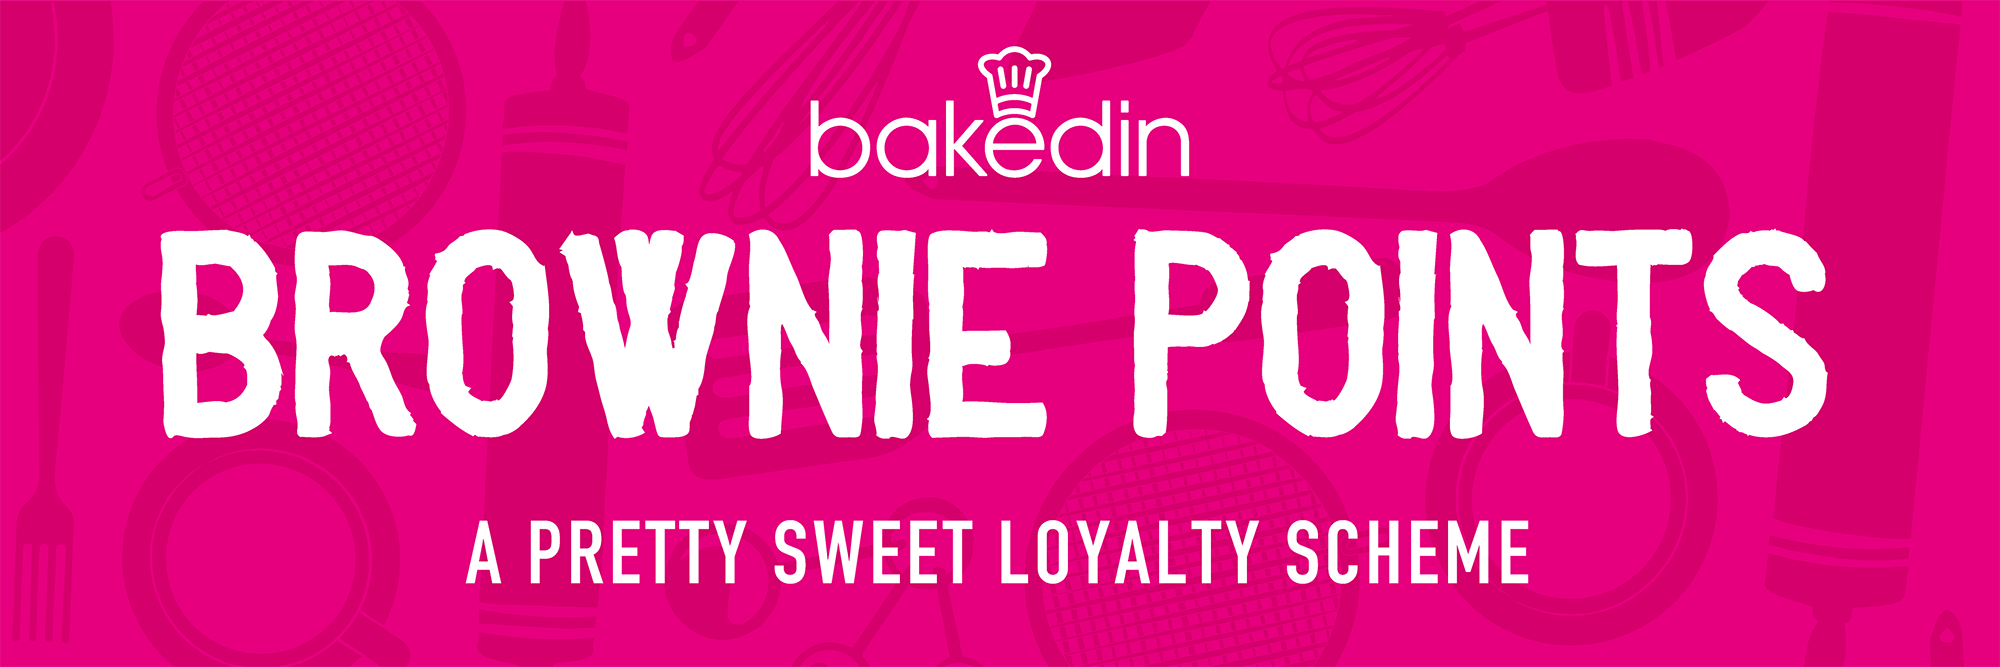 Bakedin Brownie Points Loyalty Scheme